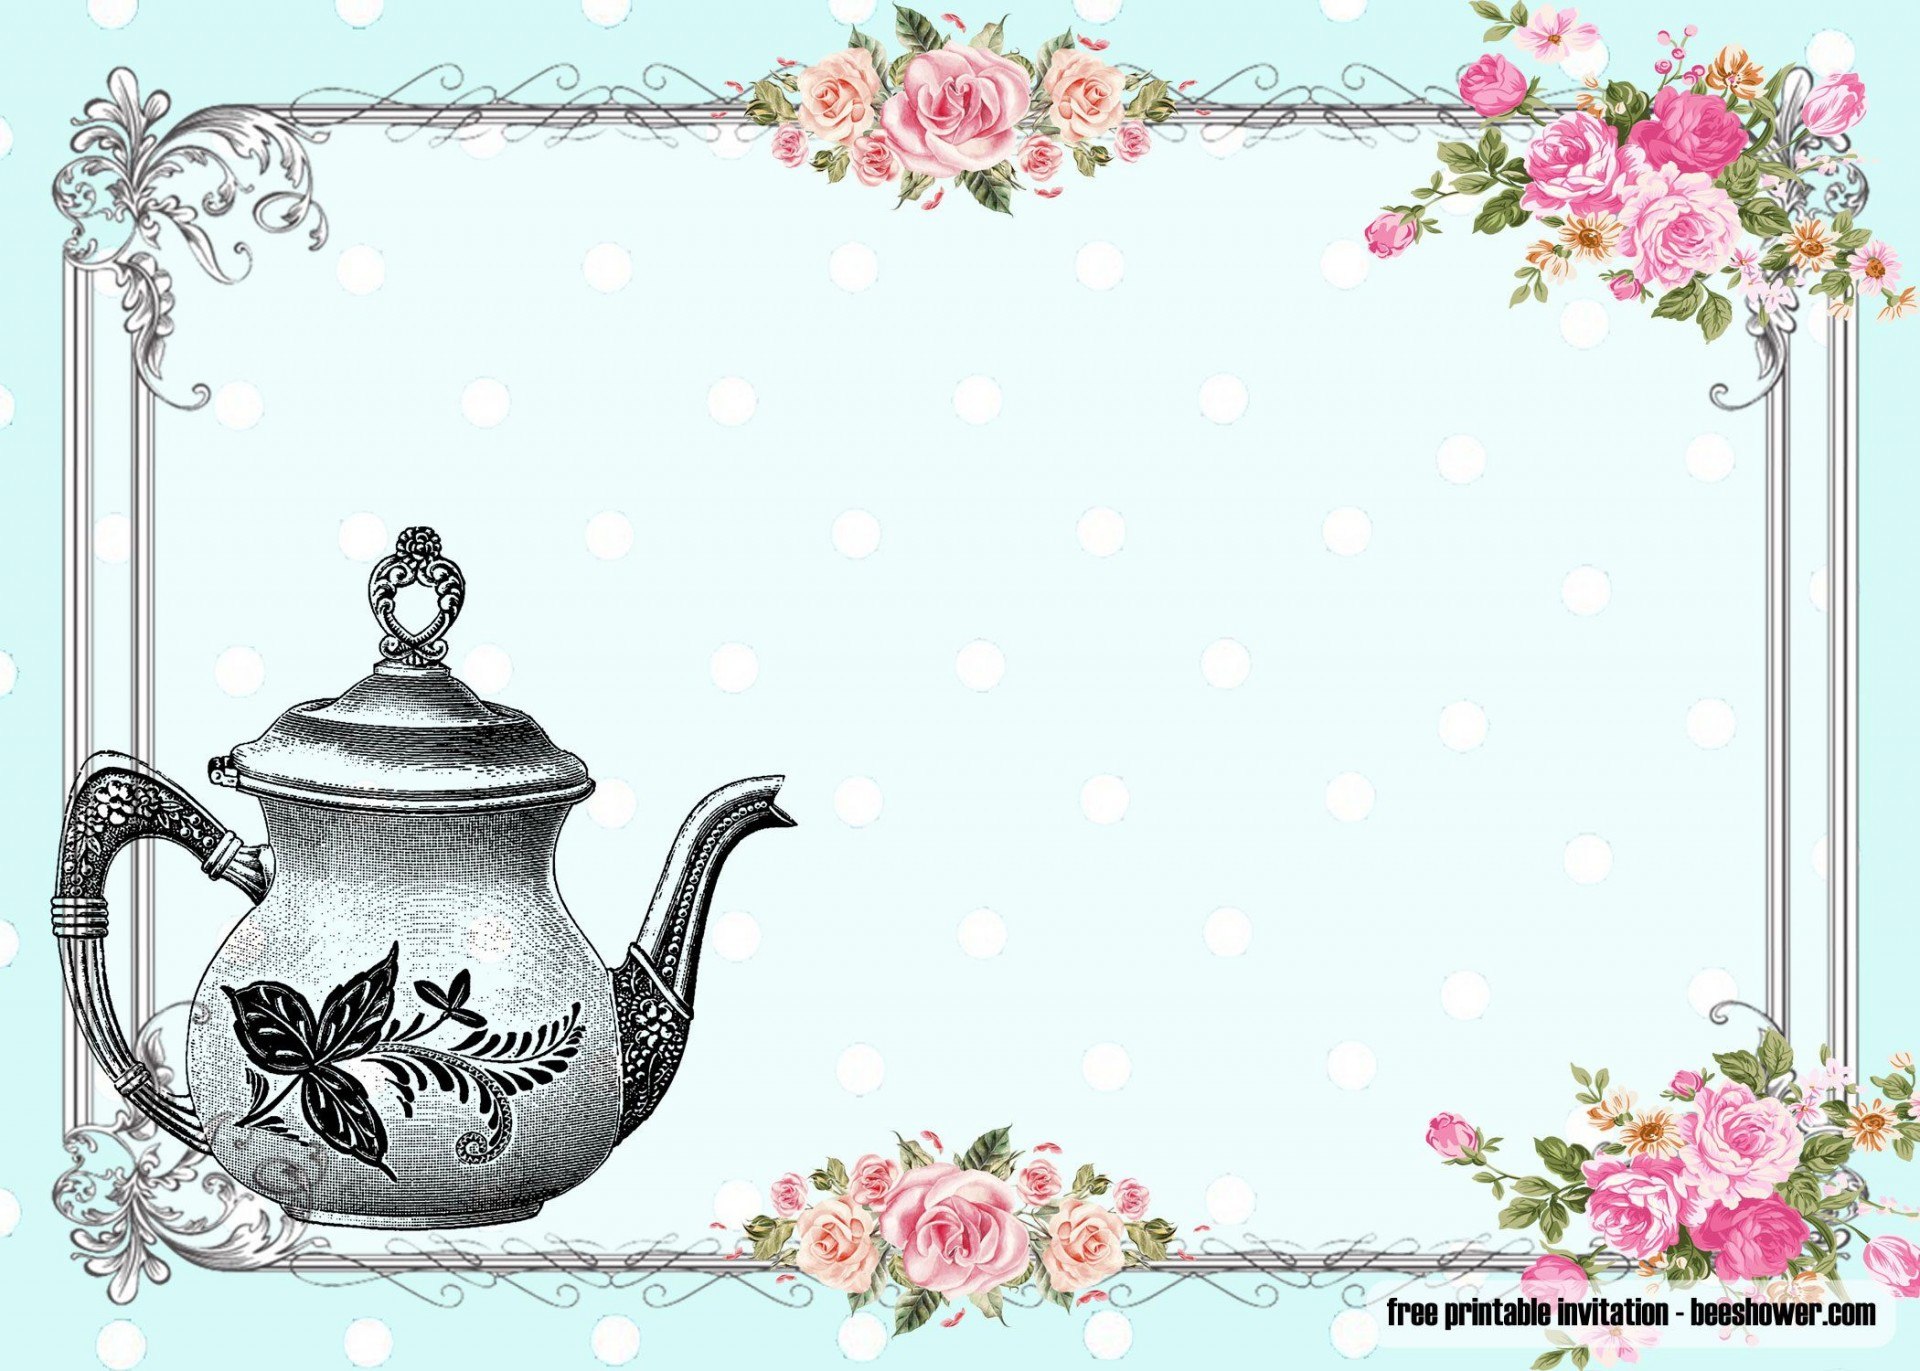 010 Awful Tea Party Invitation Template Idea  Wording Vintage Free Sample1920